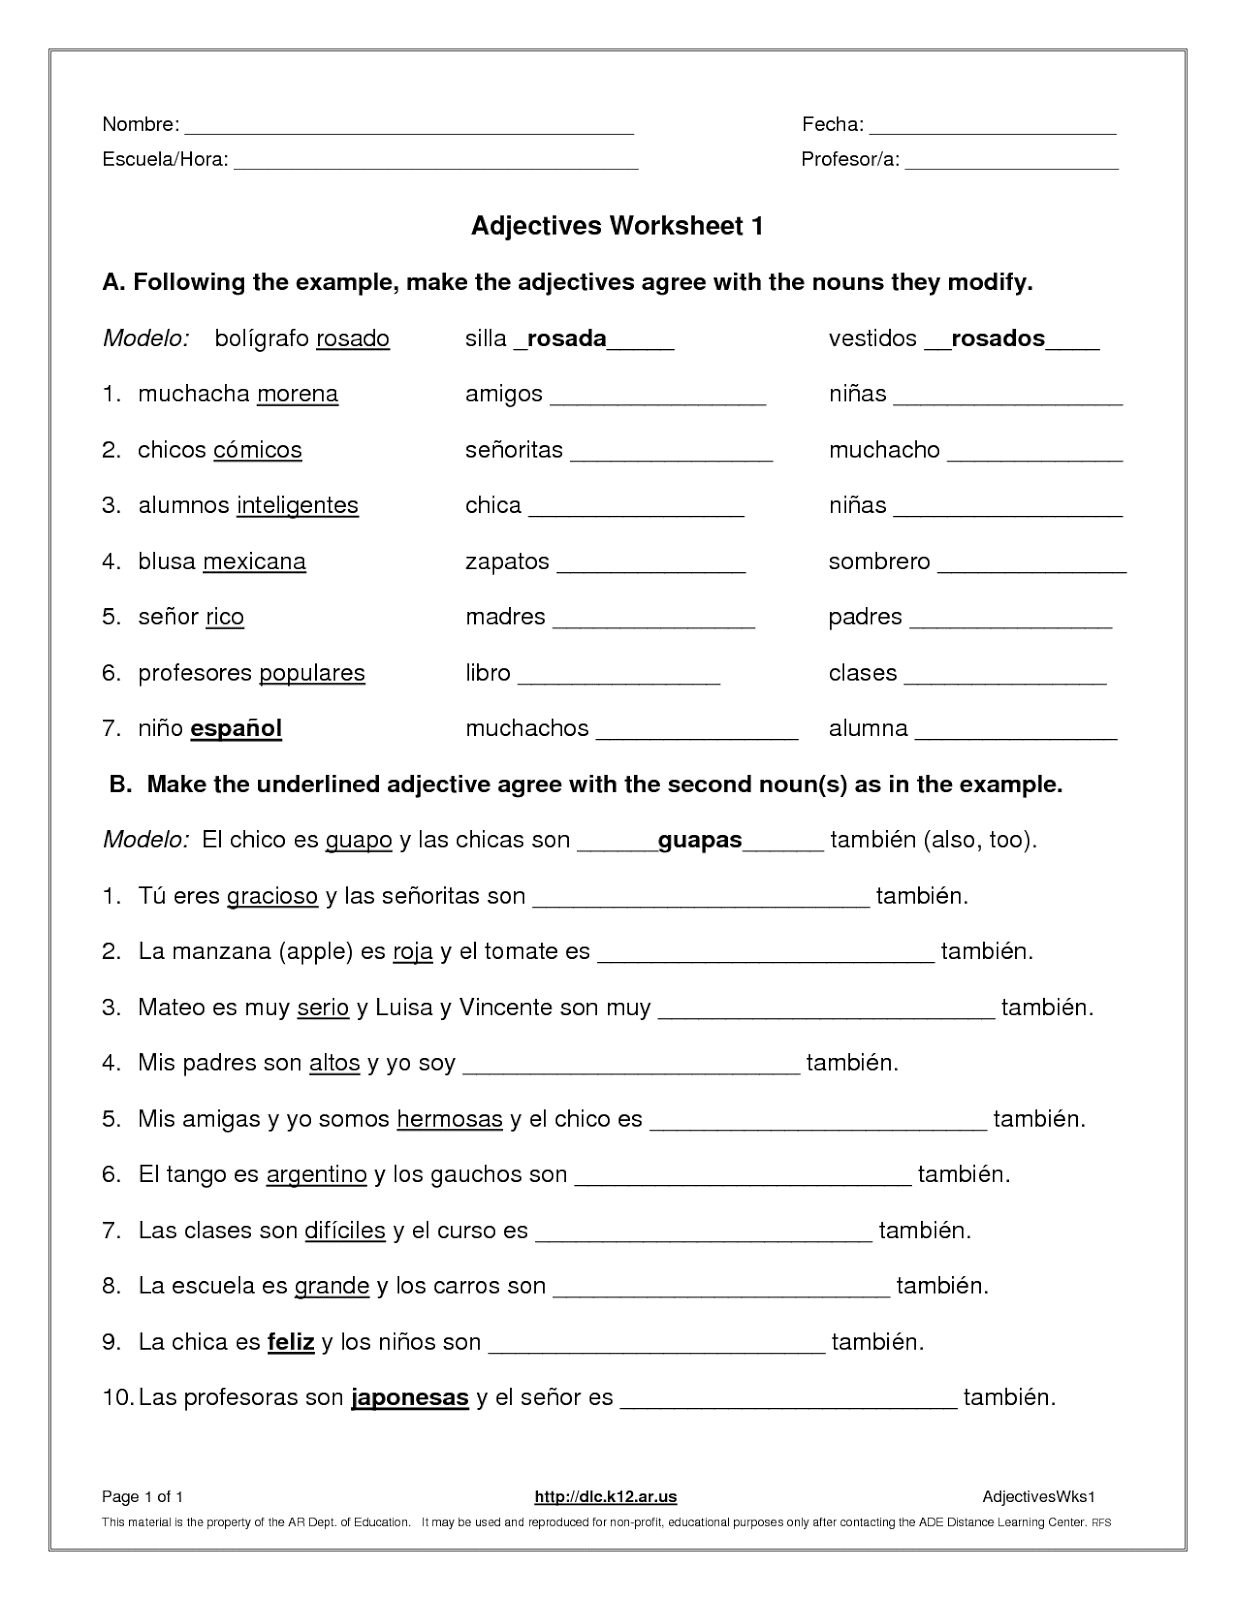 28 Worksheets For Spanish 1 Printable Zip Docx